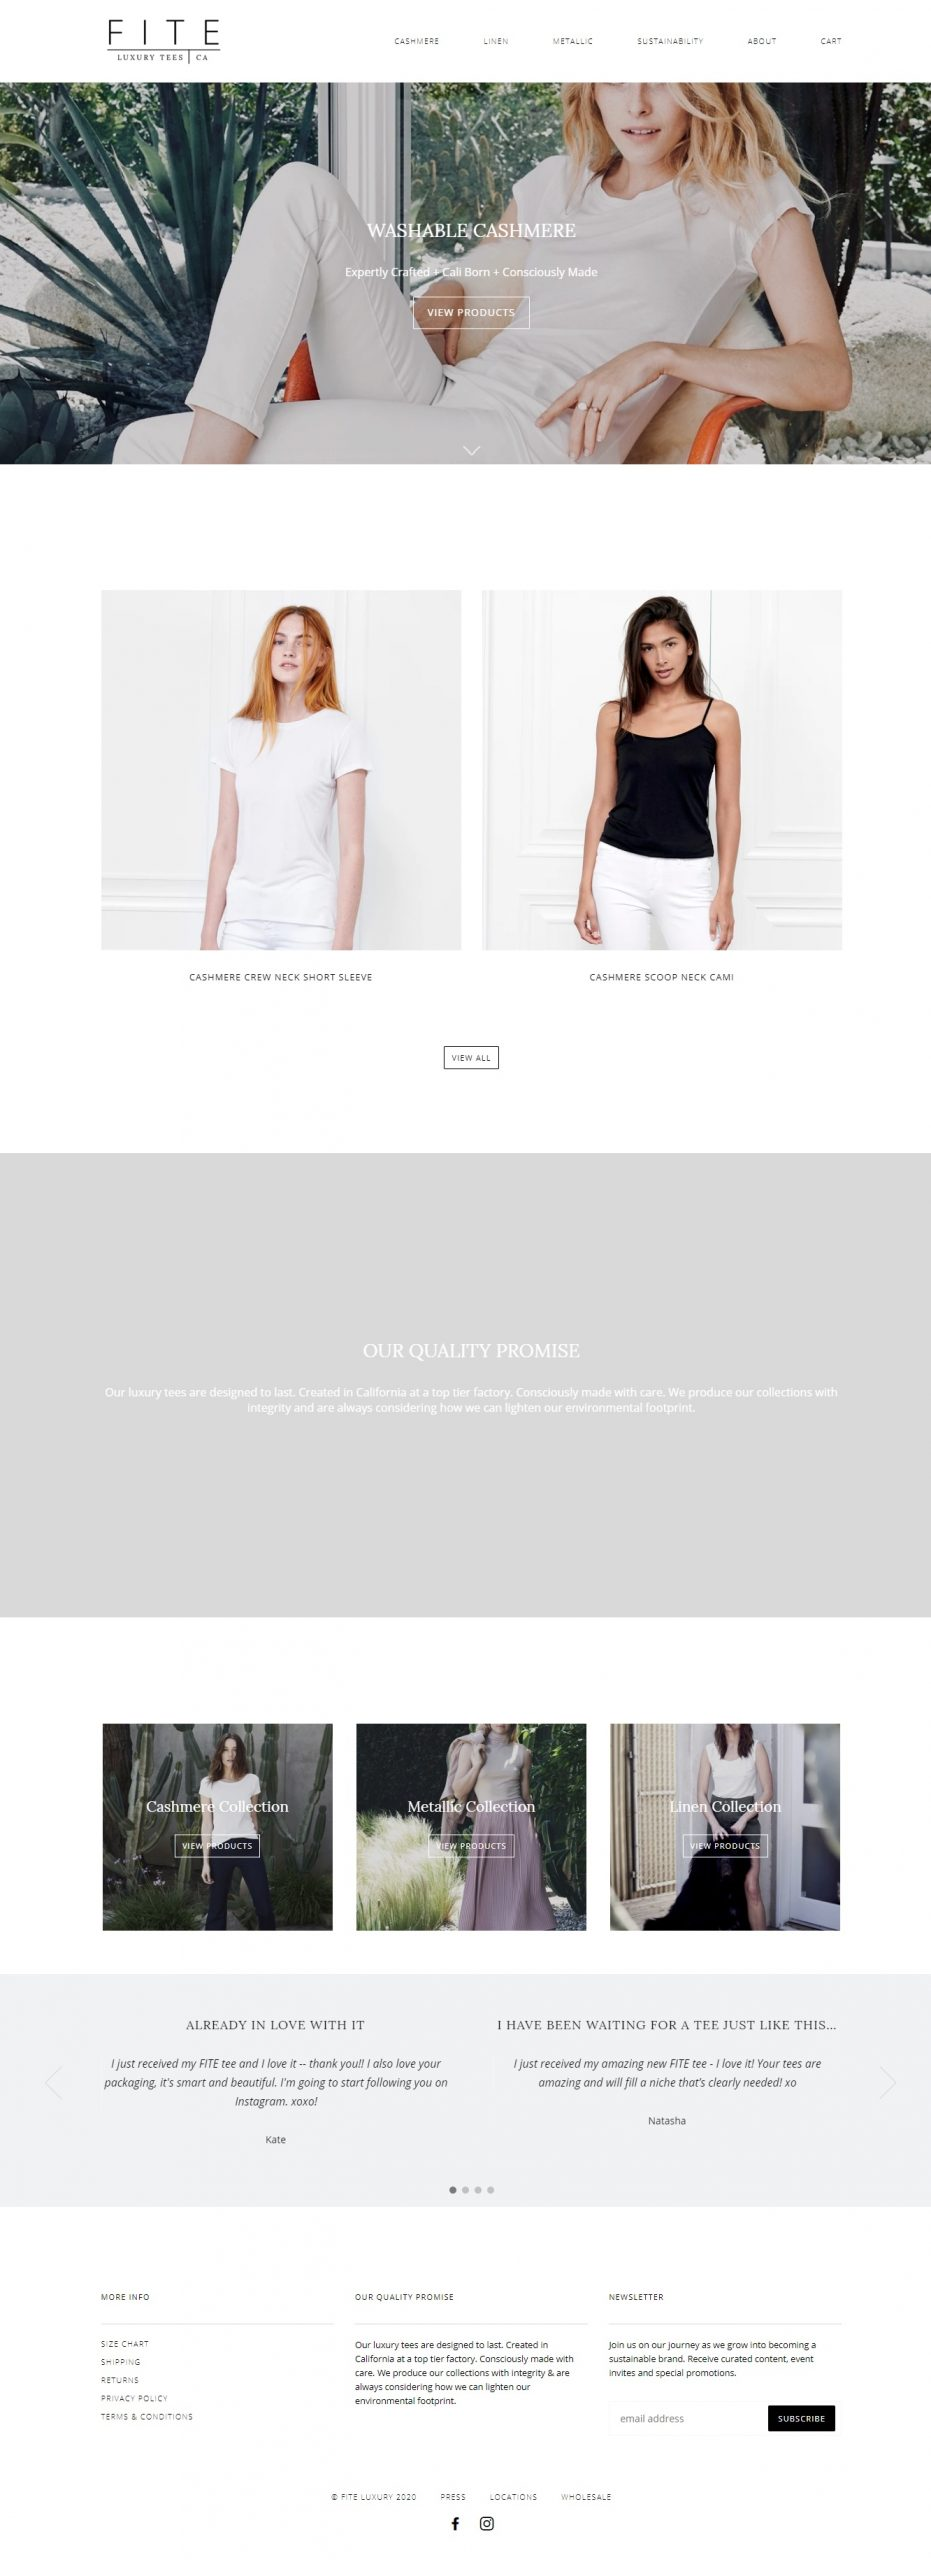 Fite Luxury Shopify Website